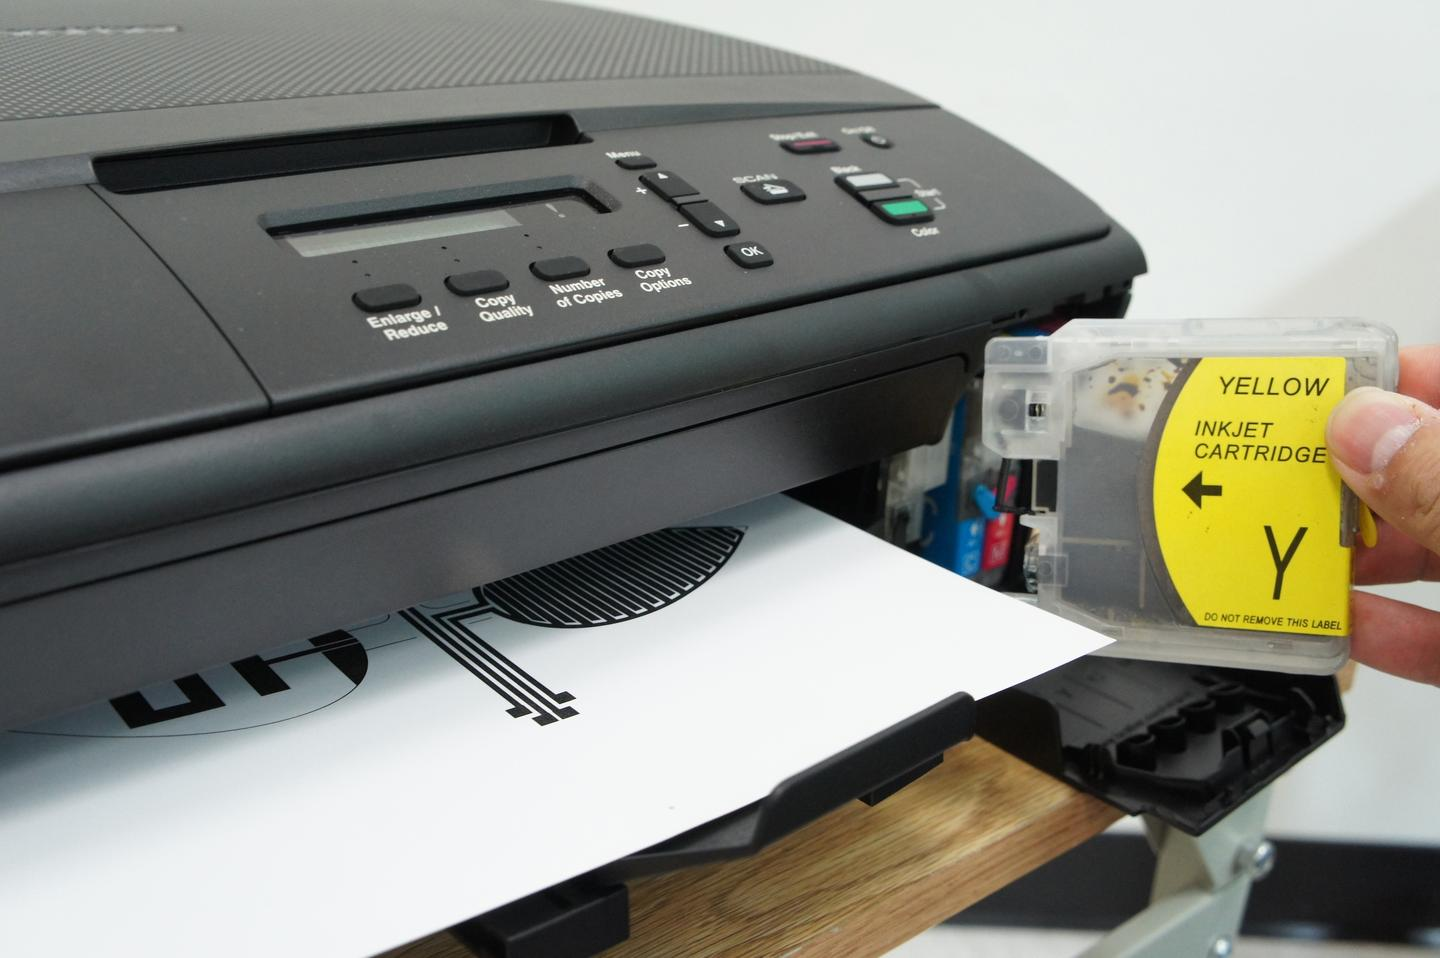 Silver nanoparticle ink is injected into ink cartridges for an off-the-shelf printer to create cheap, foldable circuitry